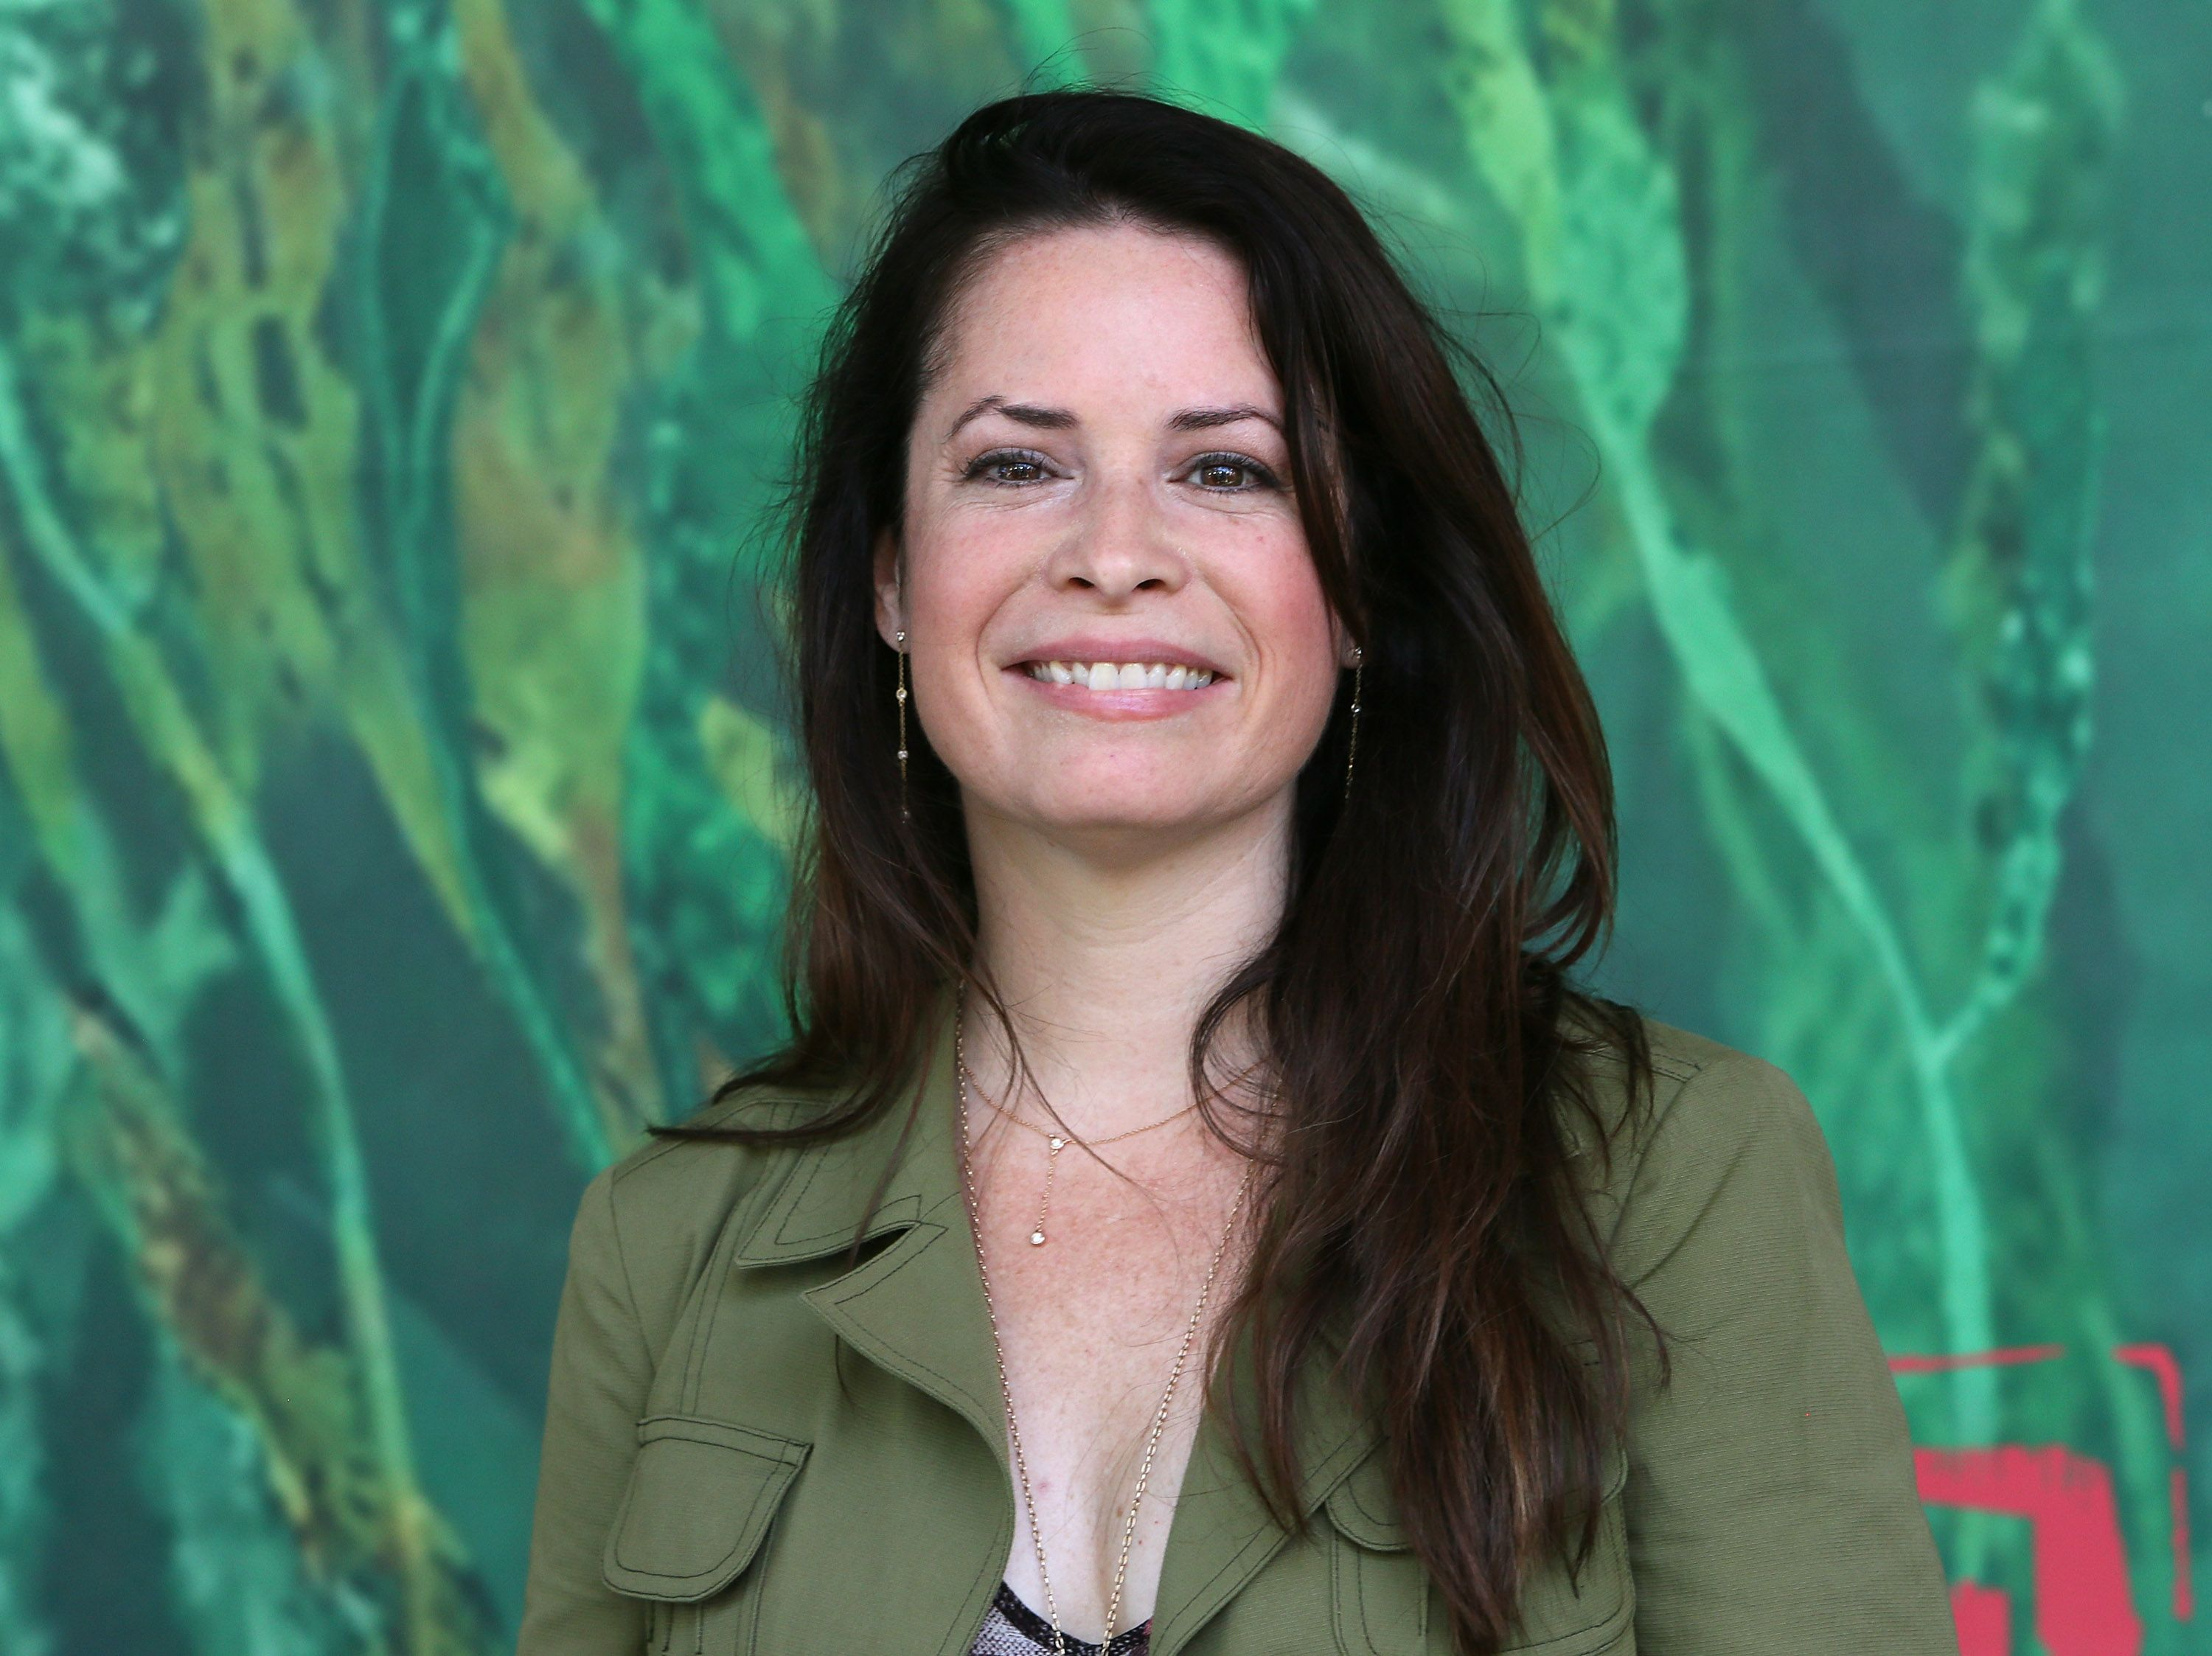 """Holly Marie Combs at the premiere of """"Kubo and the Two Strings"""" in 2016 in Universal City, California 